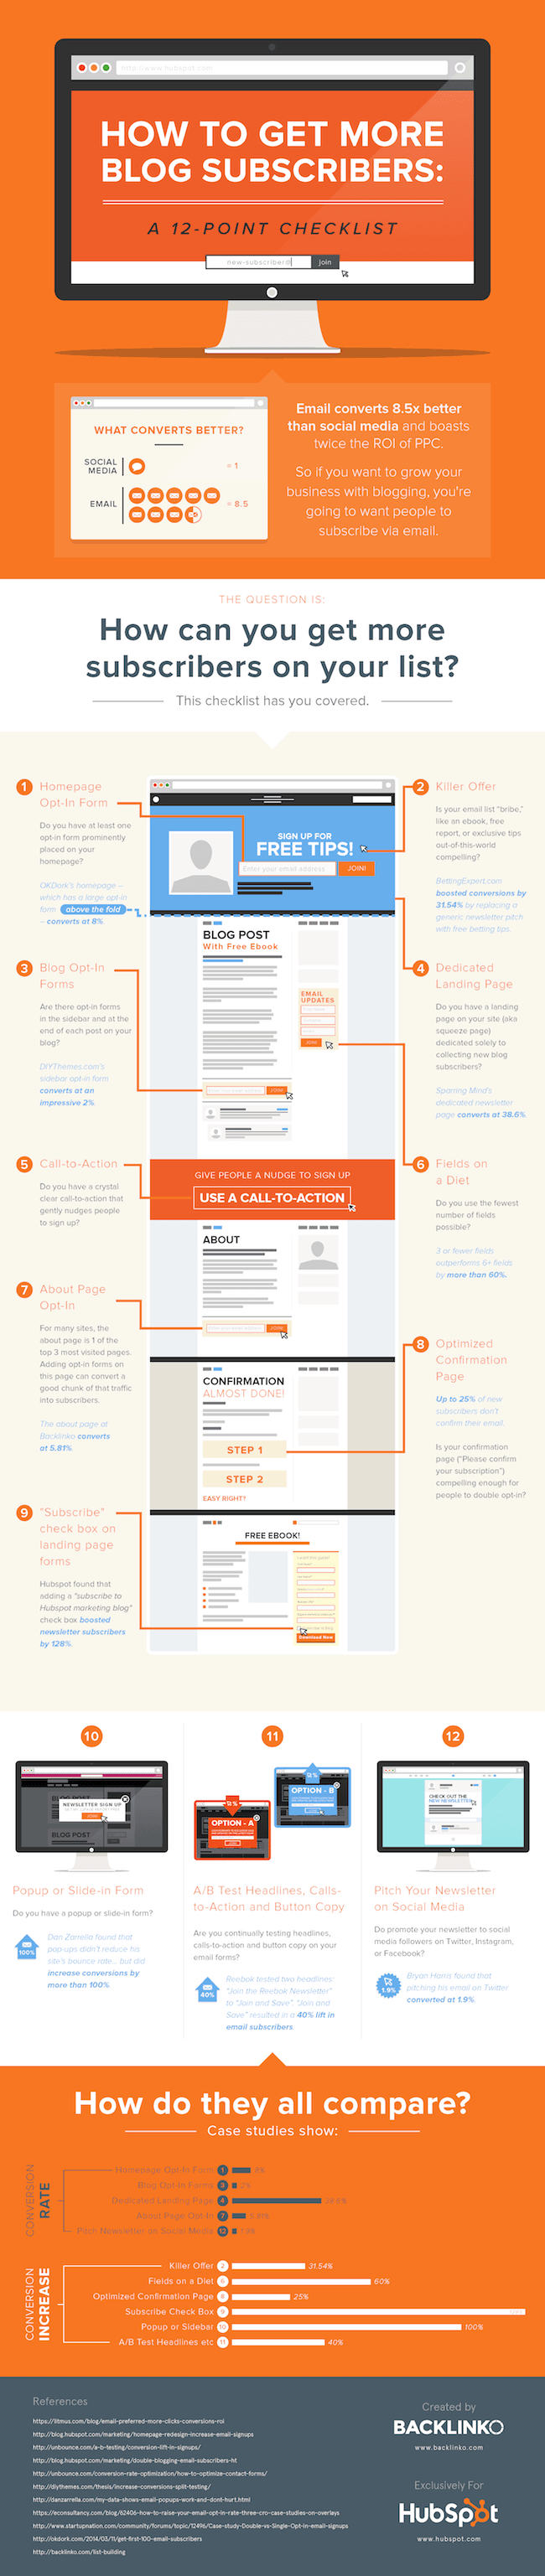 Get more tips on how to get more blog subscribers with this 12-point checklist, in this great infographic.